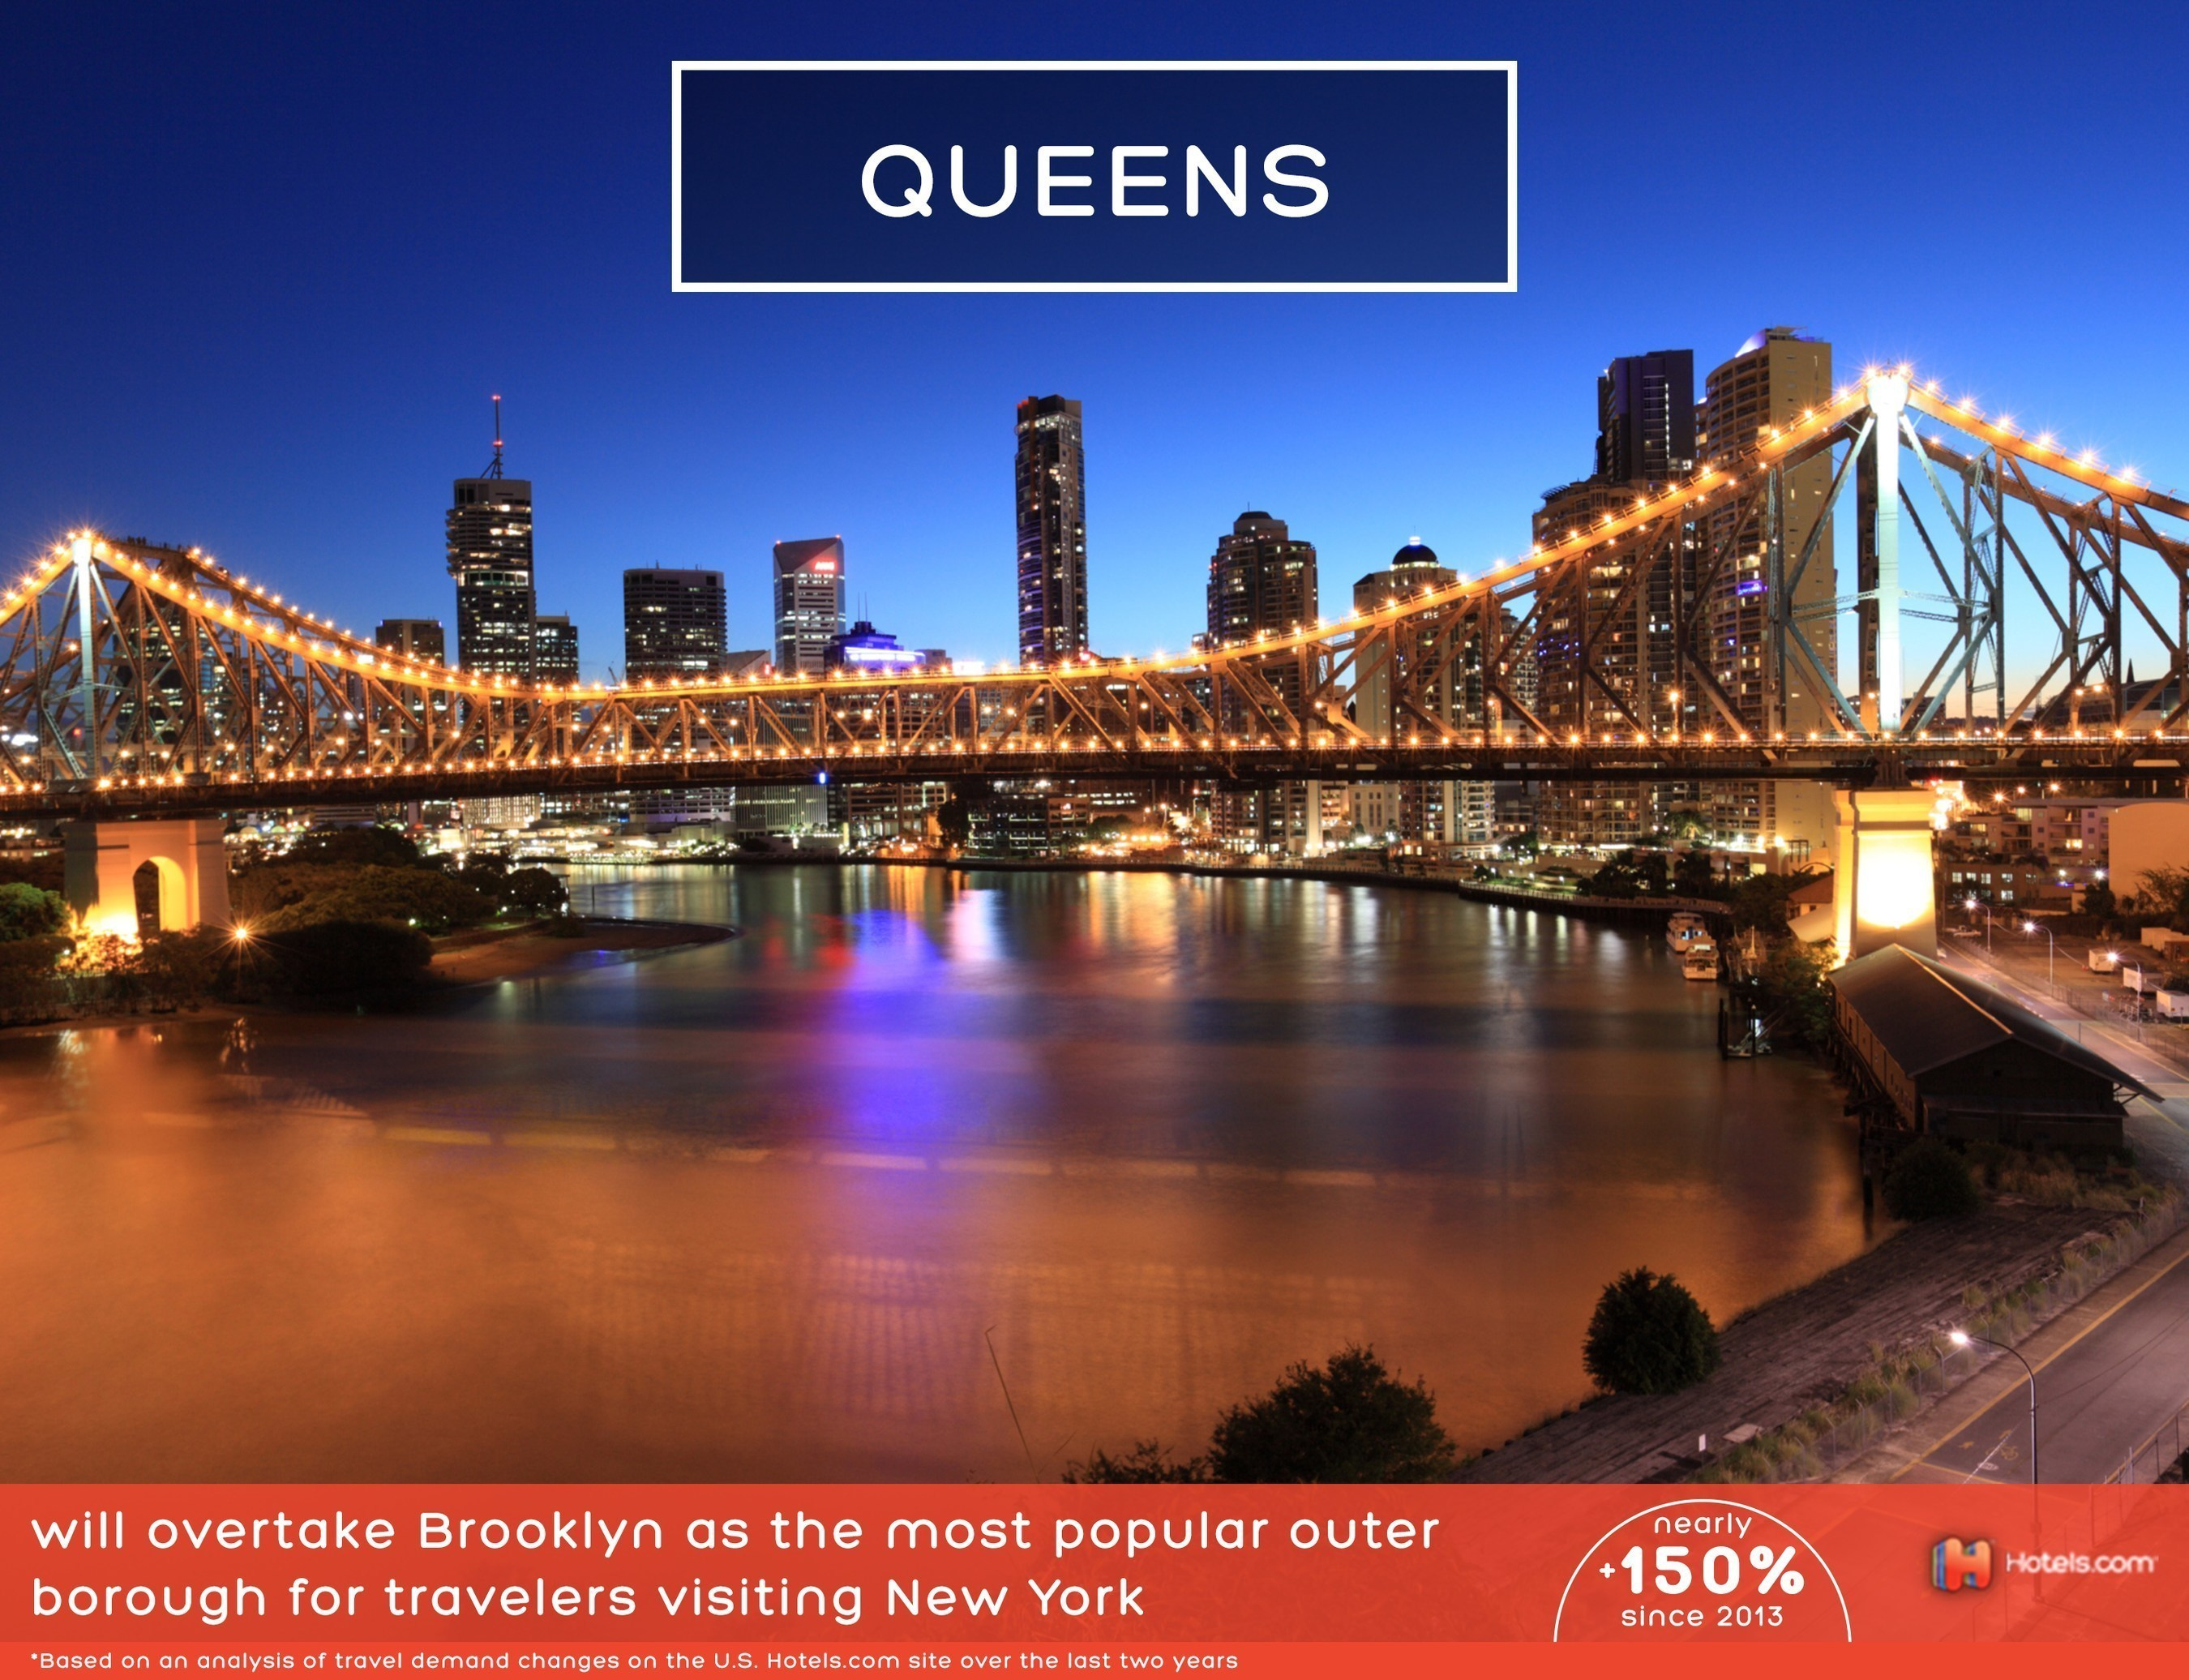 According to Hotels.com 2016 Travel Predictions, Queens will overtake Brooklyn as the most popular outer borough for travelers visiting New York in the new year.